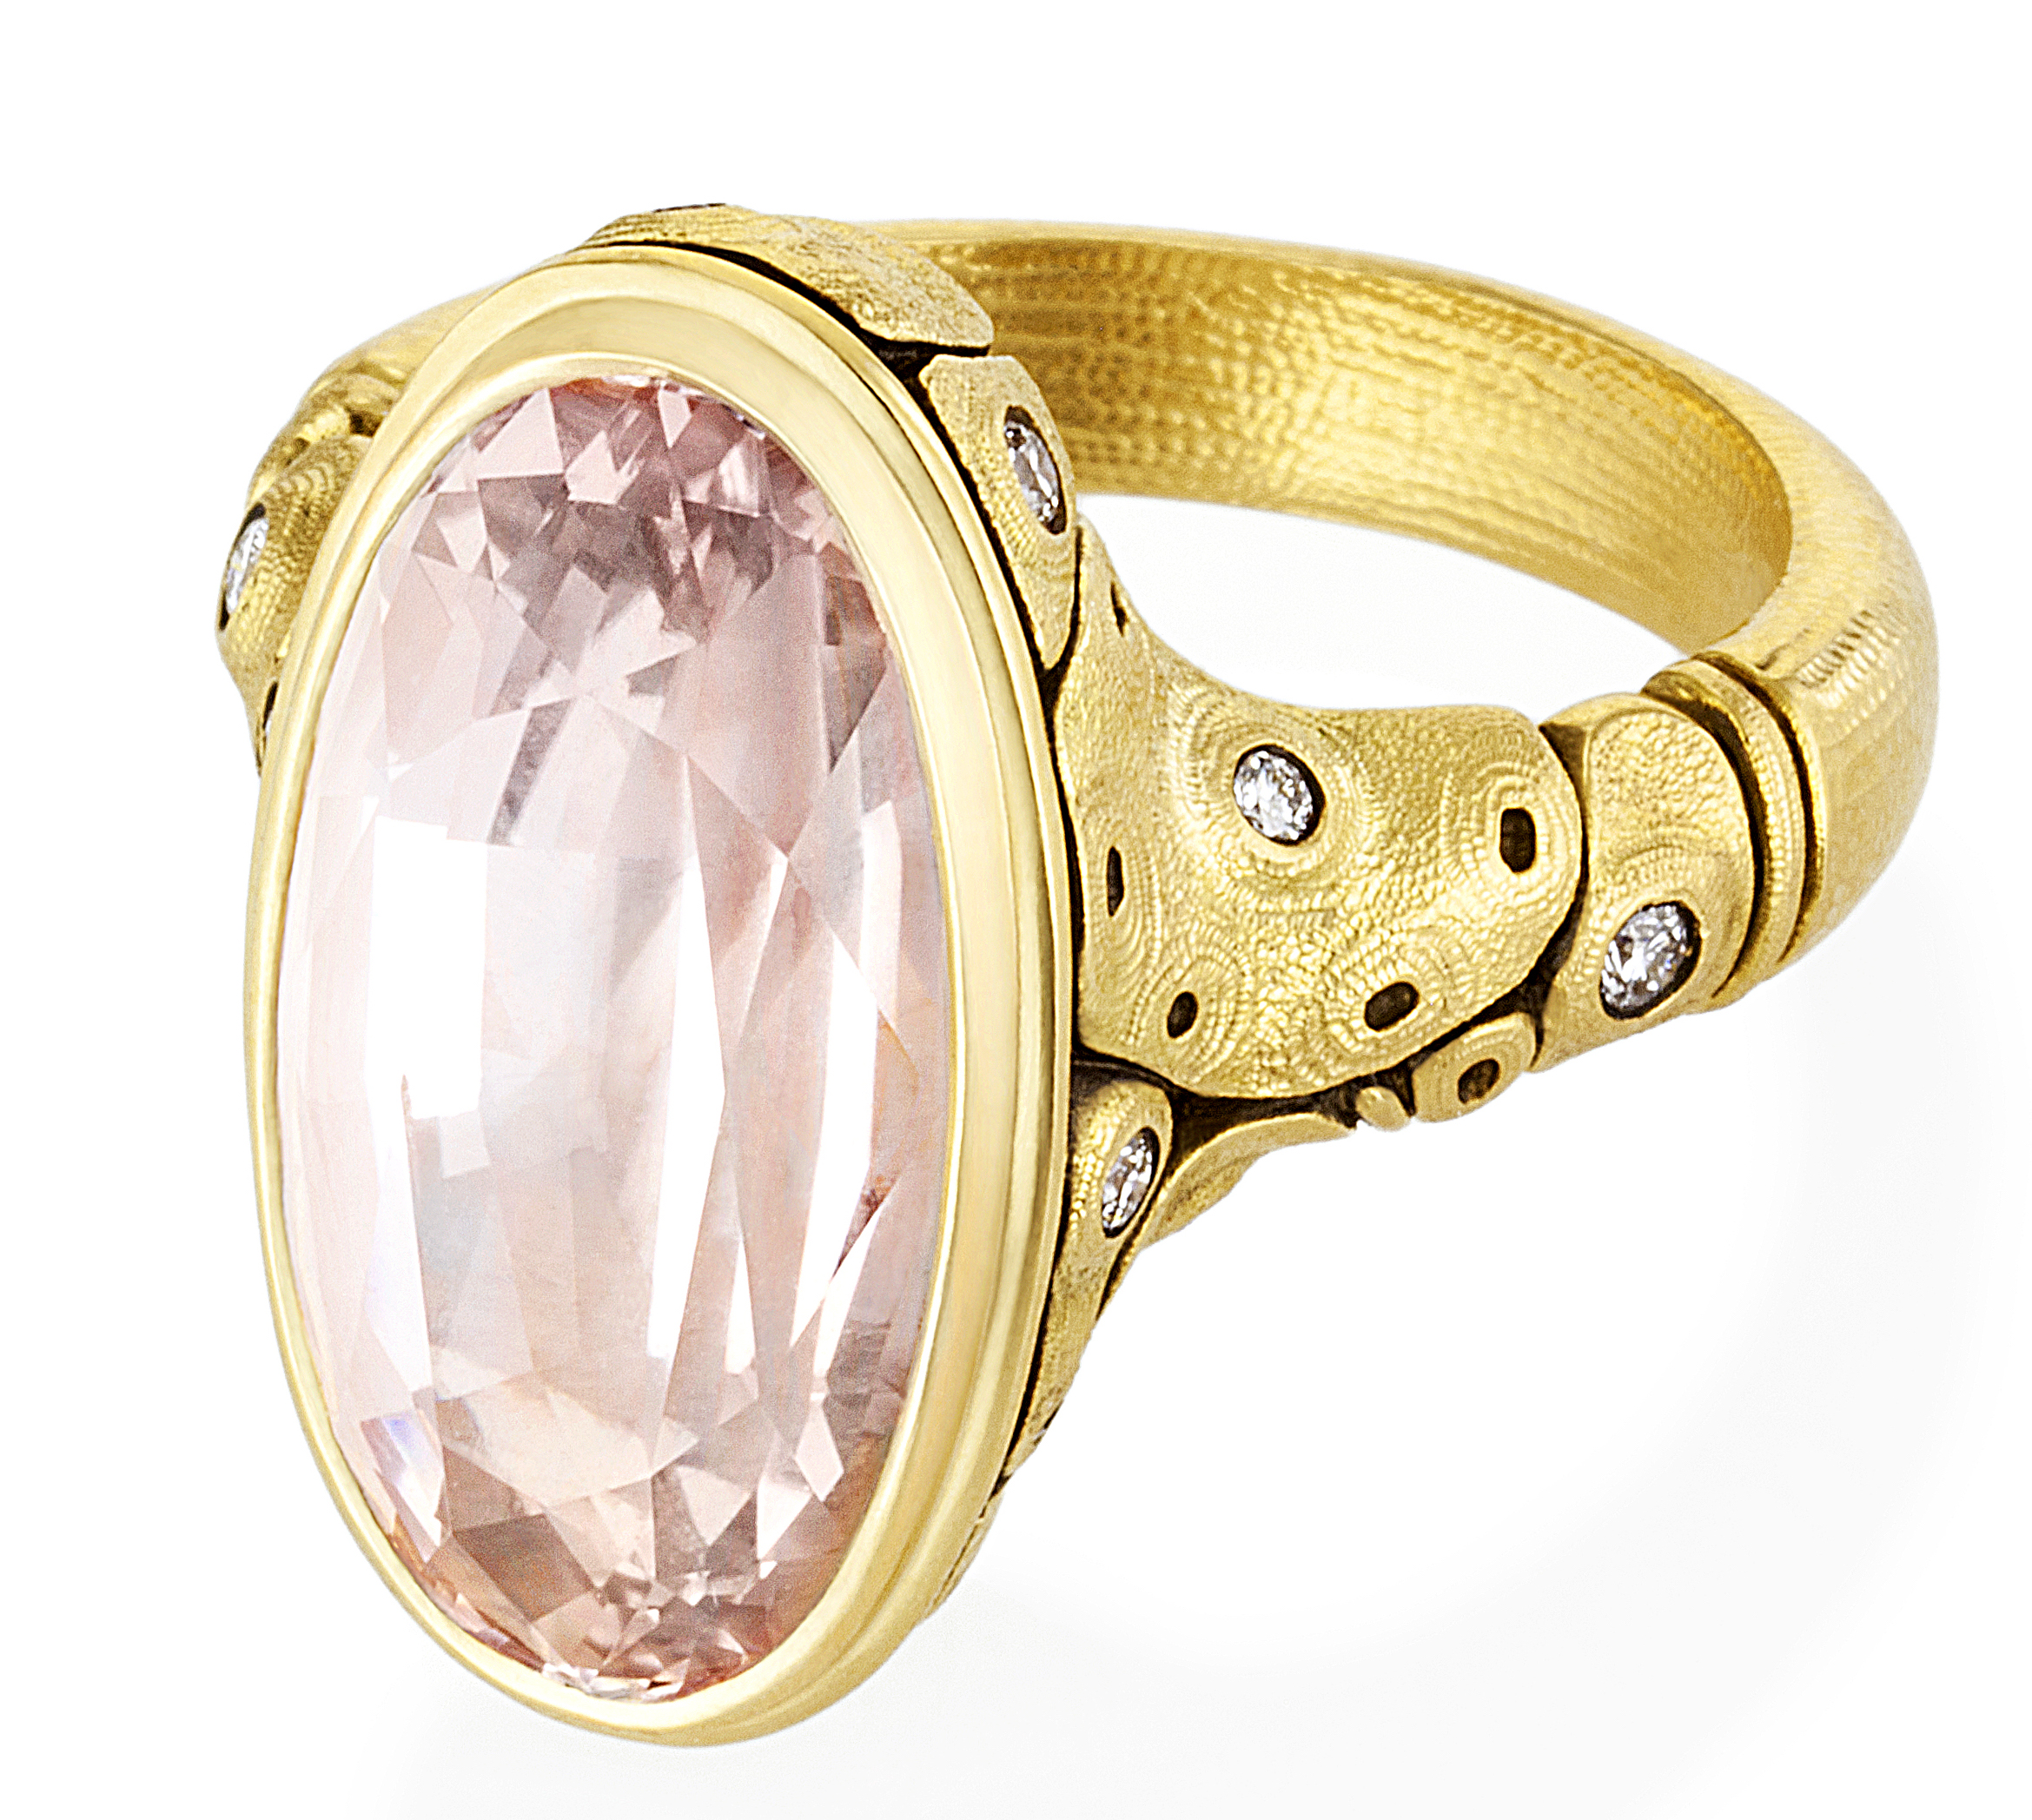 Alex Sepkus Lake Garda ring | JCK On Your Market